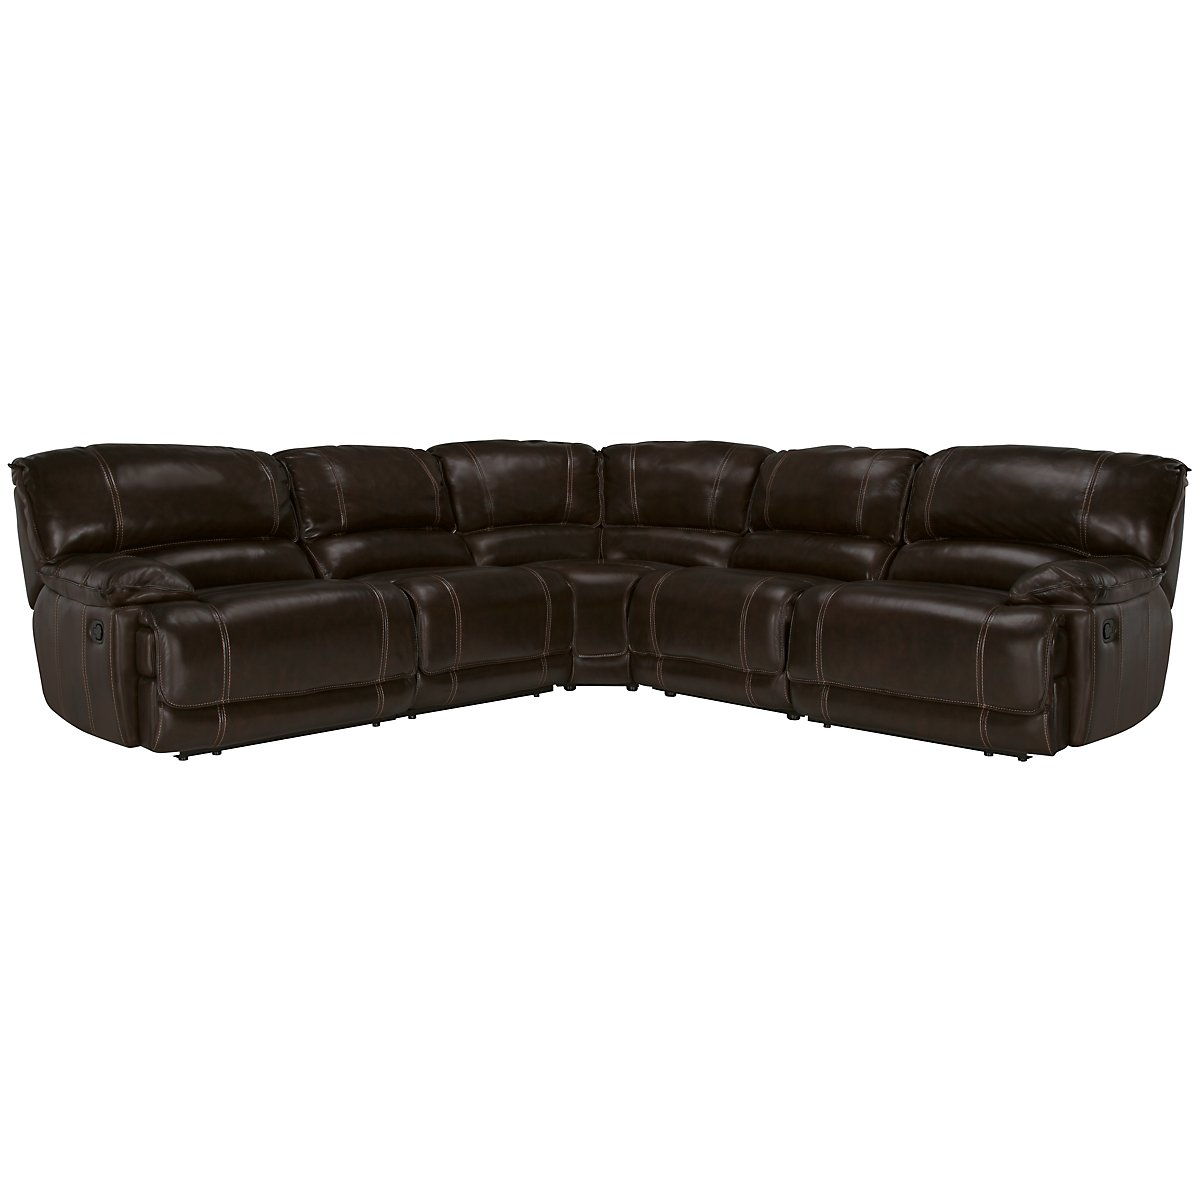 Benson Dark Brown Leather & Vinyl Small Two-Arm Manually Reclining Sectional